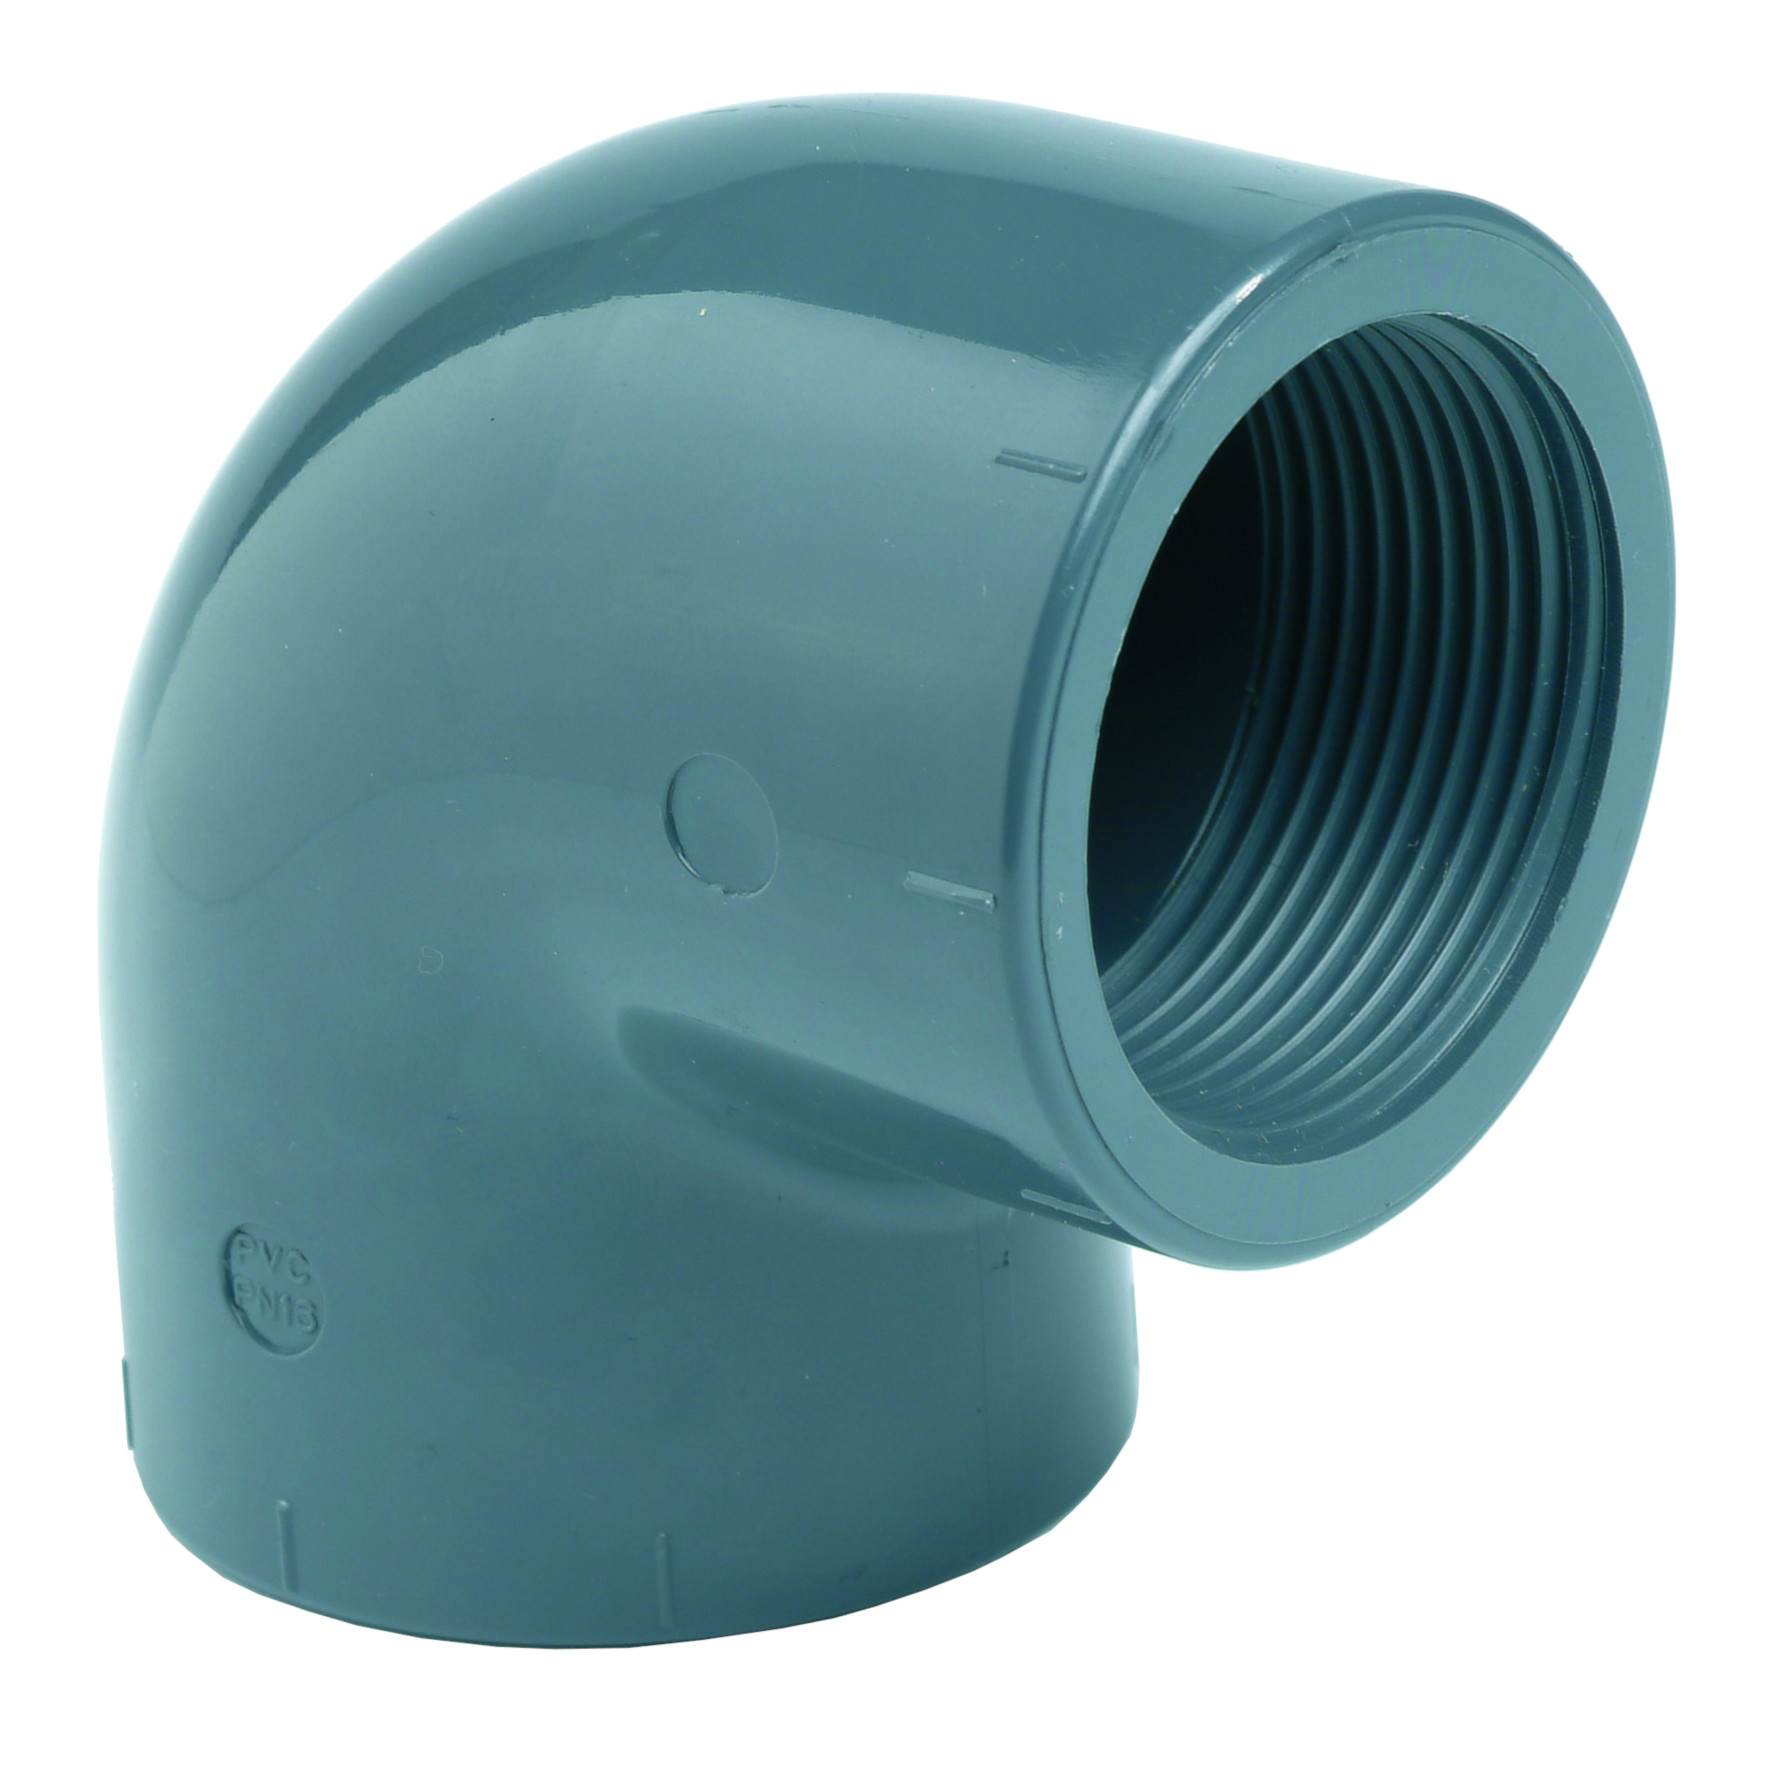 PVC-U 90° Elbow - EFFAST - 100% Made in Italy